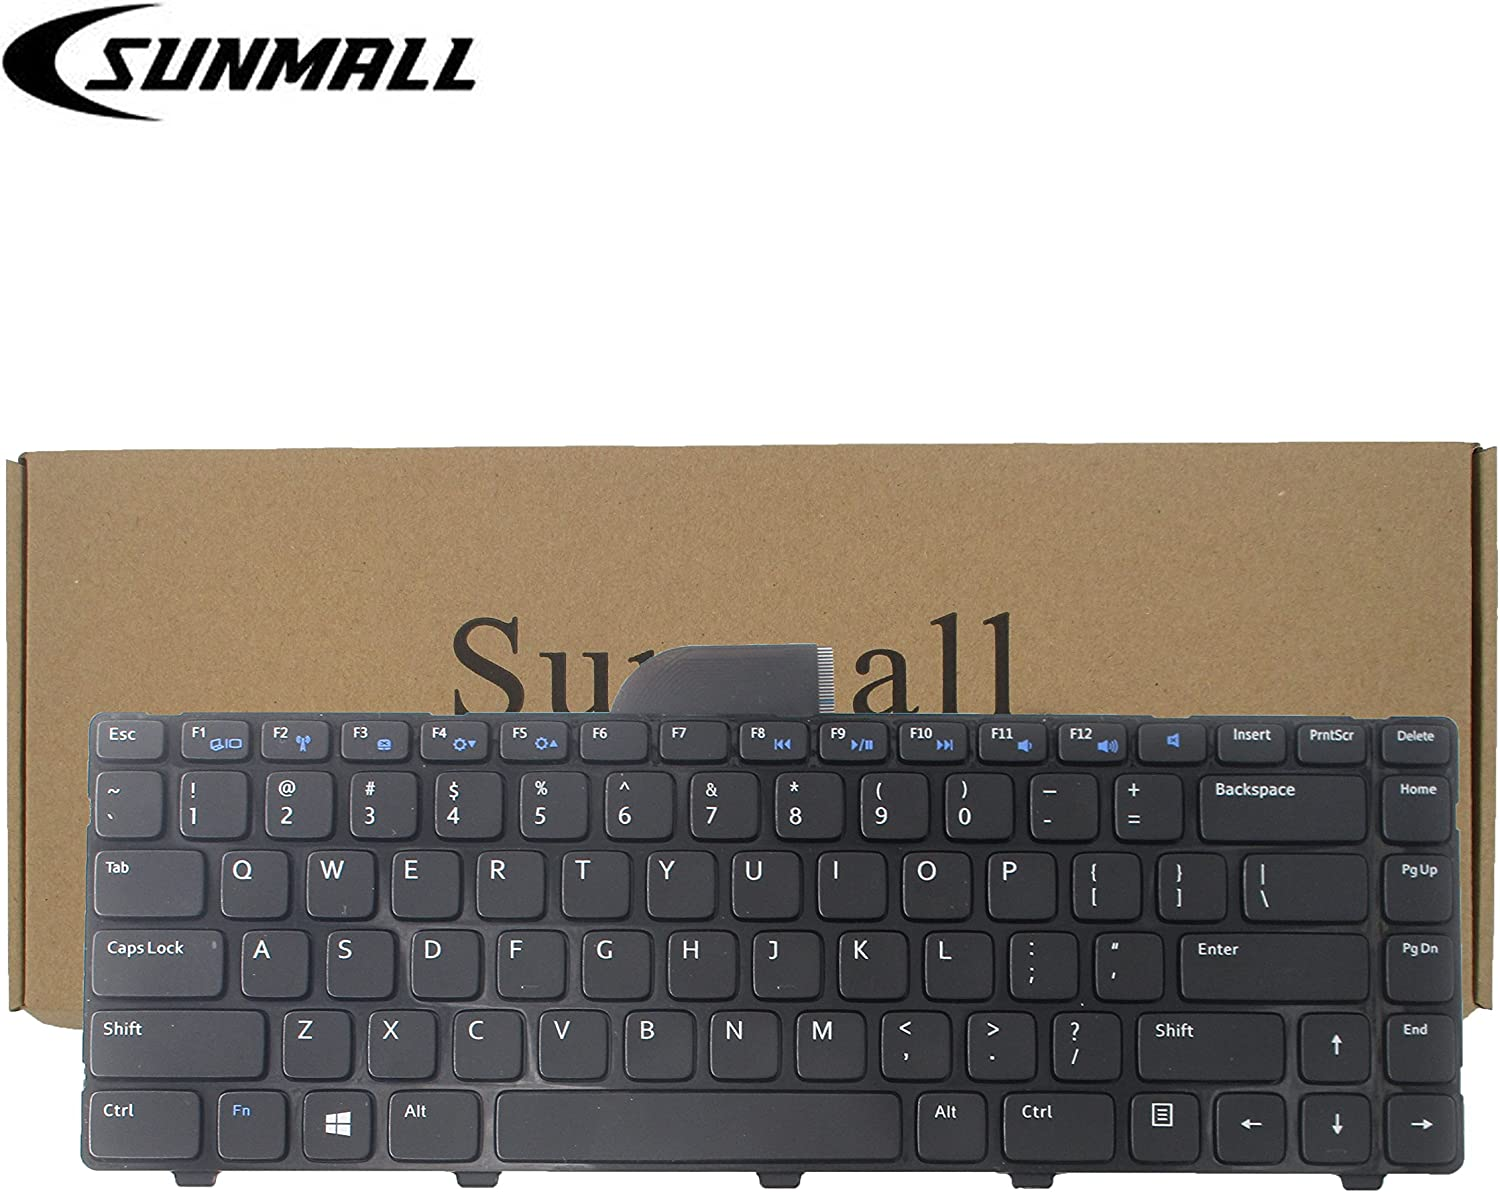 SUNMALL Keyboard Replacement Compatible with Dell Inspiron 14R 2158 3421 3437 5421 5437 15Z-5523 M431R,Vostro 2421, Latitude 3440 Series Laptop Black US Layout